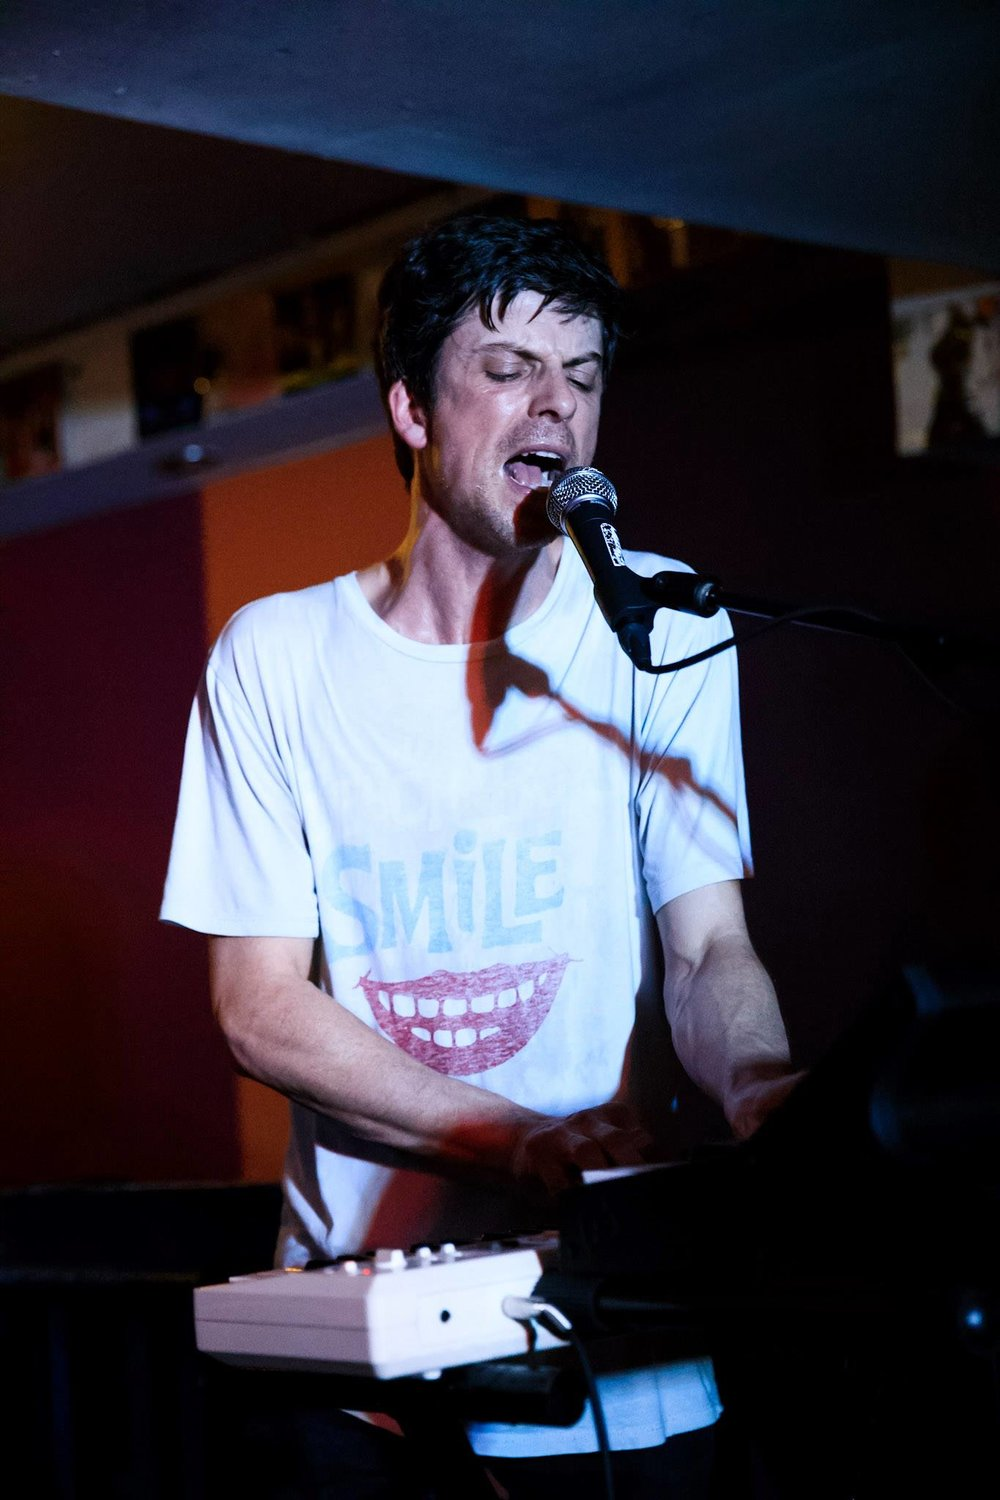 EUROS CHILDS by Simon Ayre